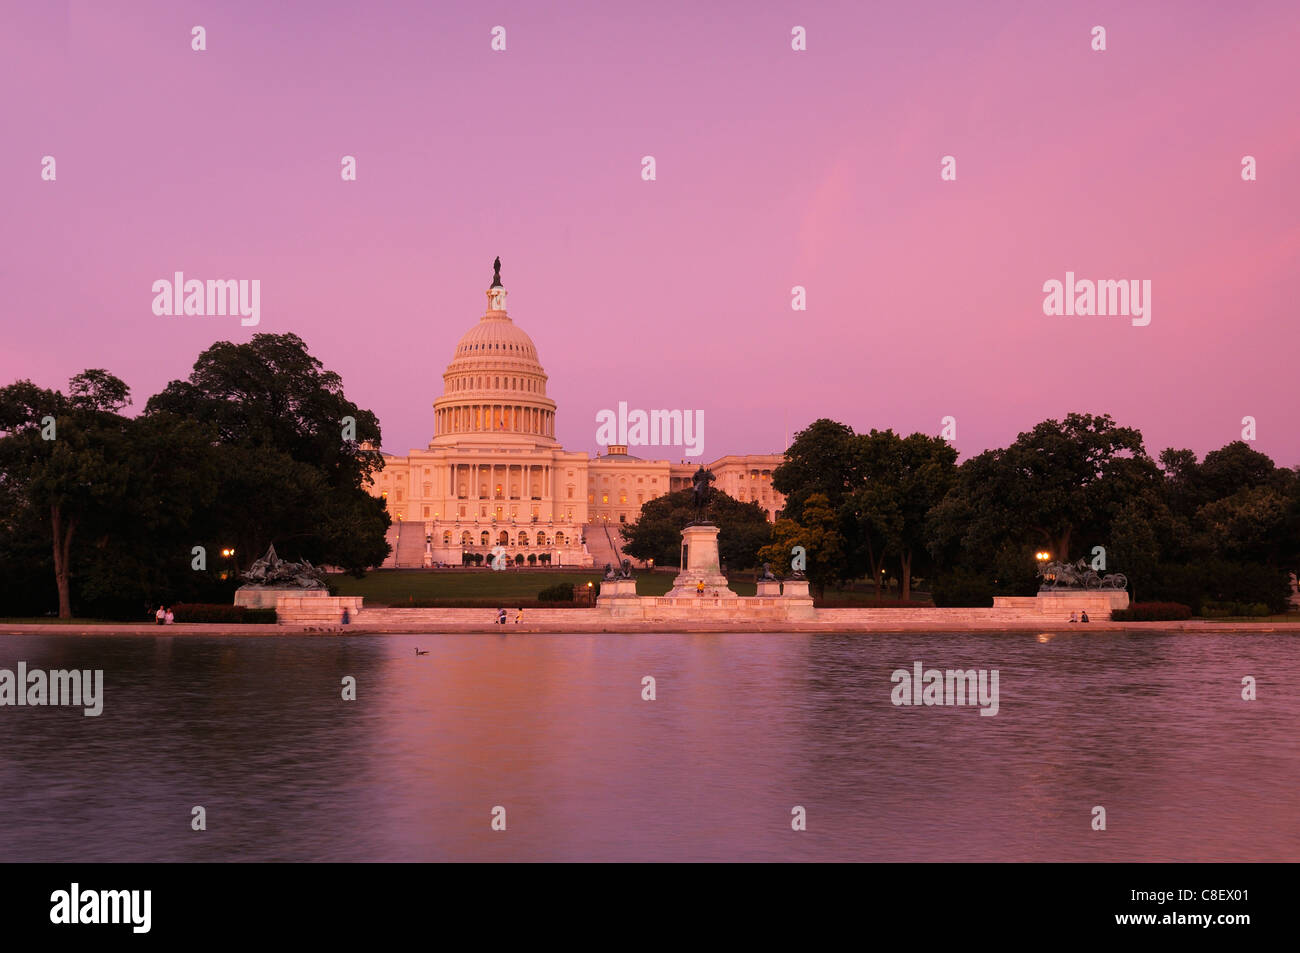 U.S., Capitol, Capitol, Reflecting, Pool, The Mall, Washington D.C., District of Columbia, USA, United States, America, - Stock Image